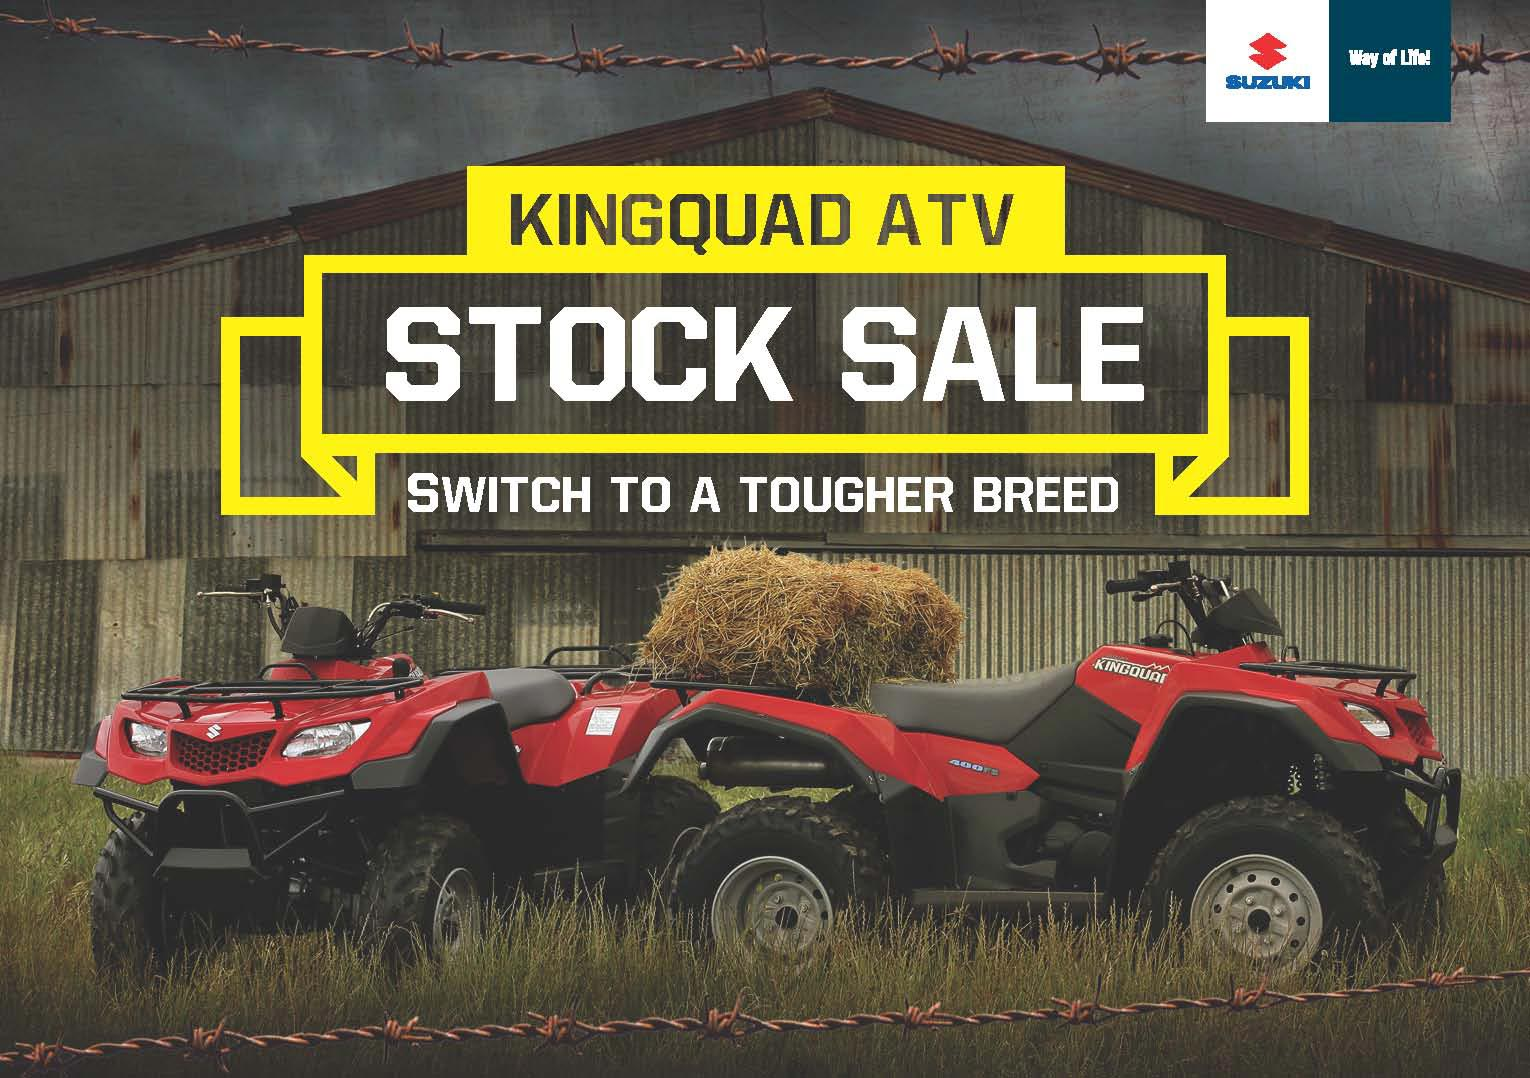 With factory bonuses on every model until June 30, your local Suzuki dealer has the stock and is ready to deal on the legendary range of Suzuki farm ATVs.